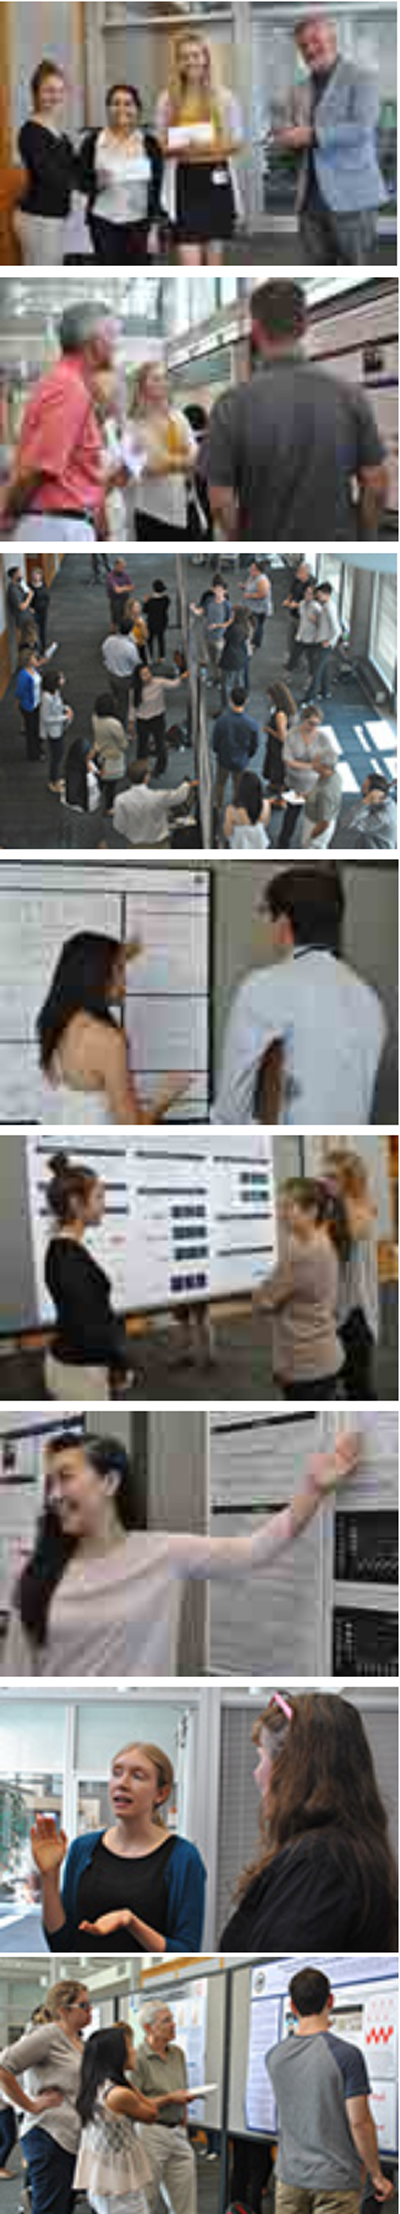 Images from the 2015 summer intern poster session where the interns presented their research in poster form and explained their research to the Institute's faculty and staff